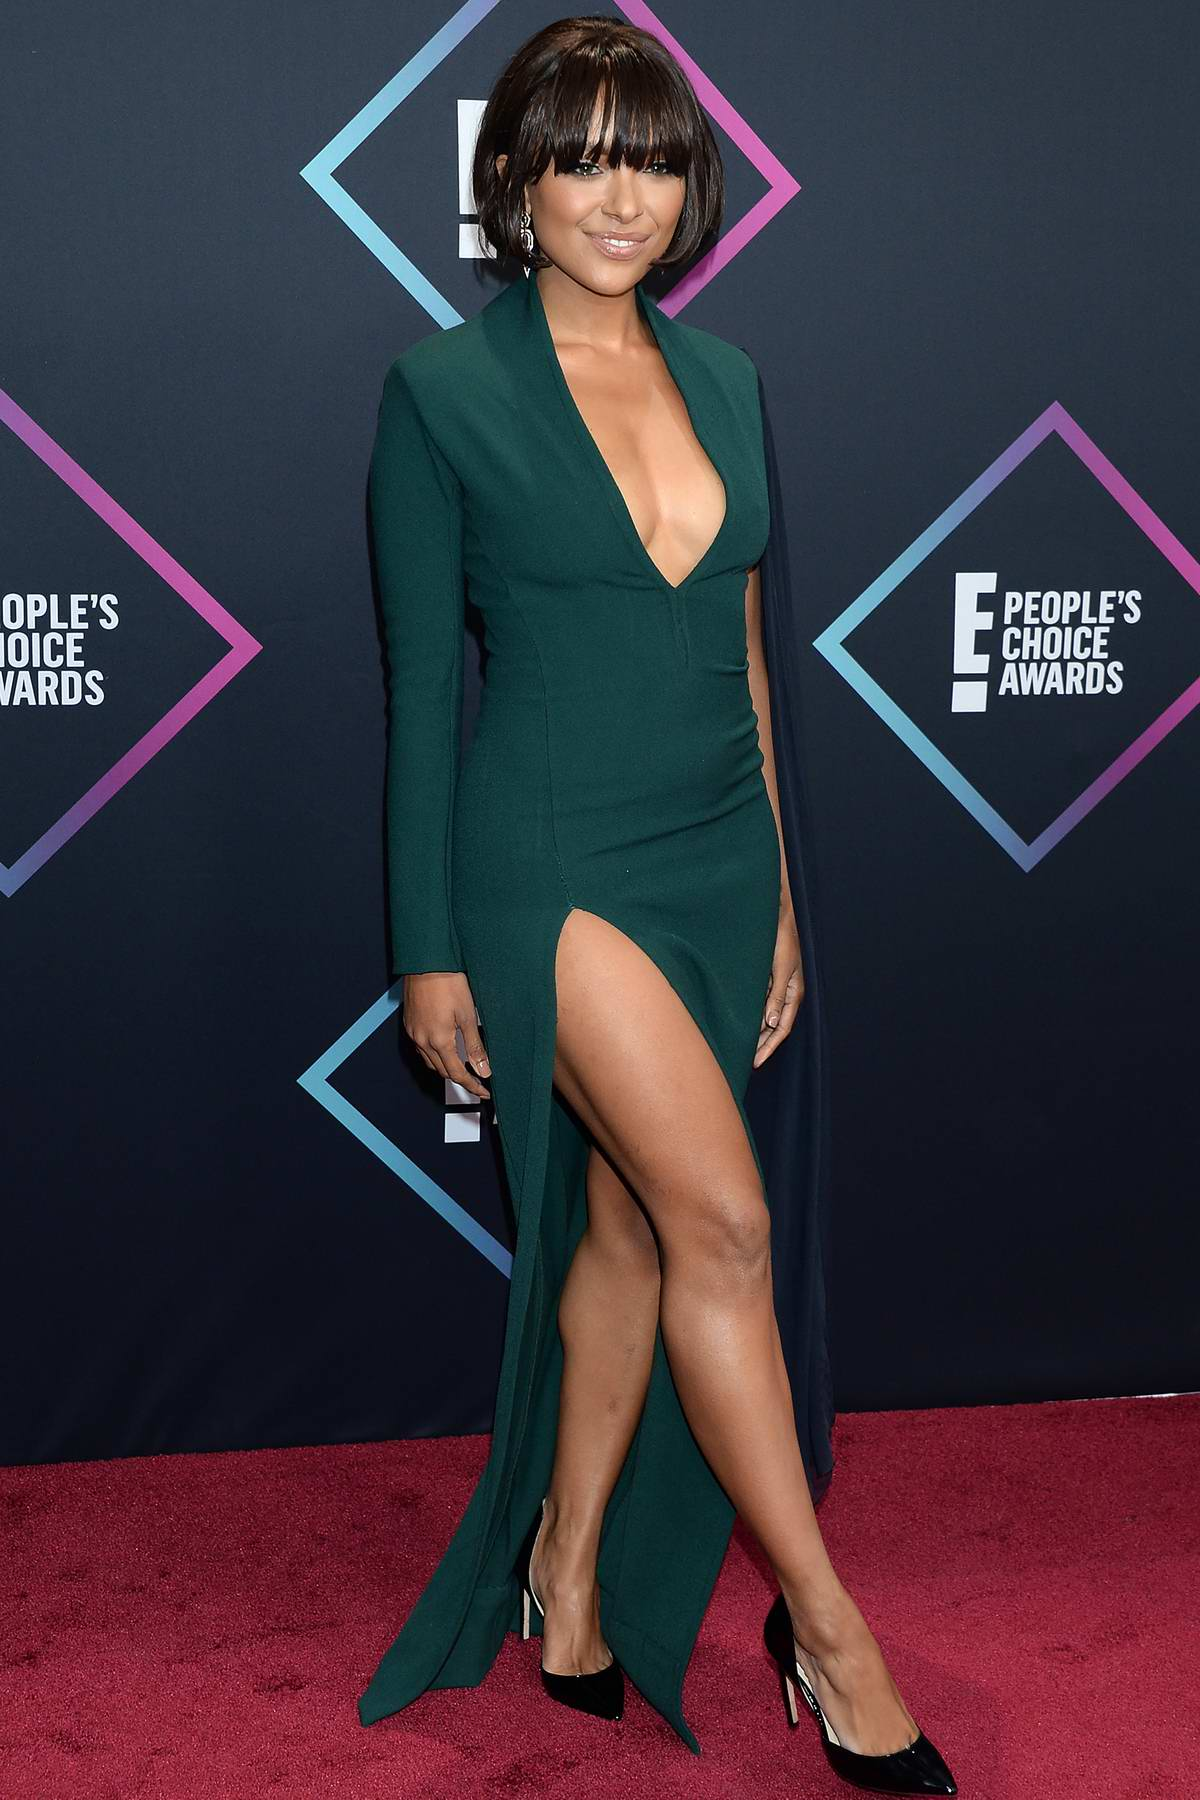 Kat Graham attends People's Choice Awards 2018 at Barker Hangar in Santa Monica, California